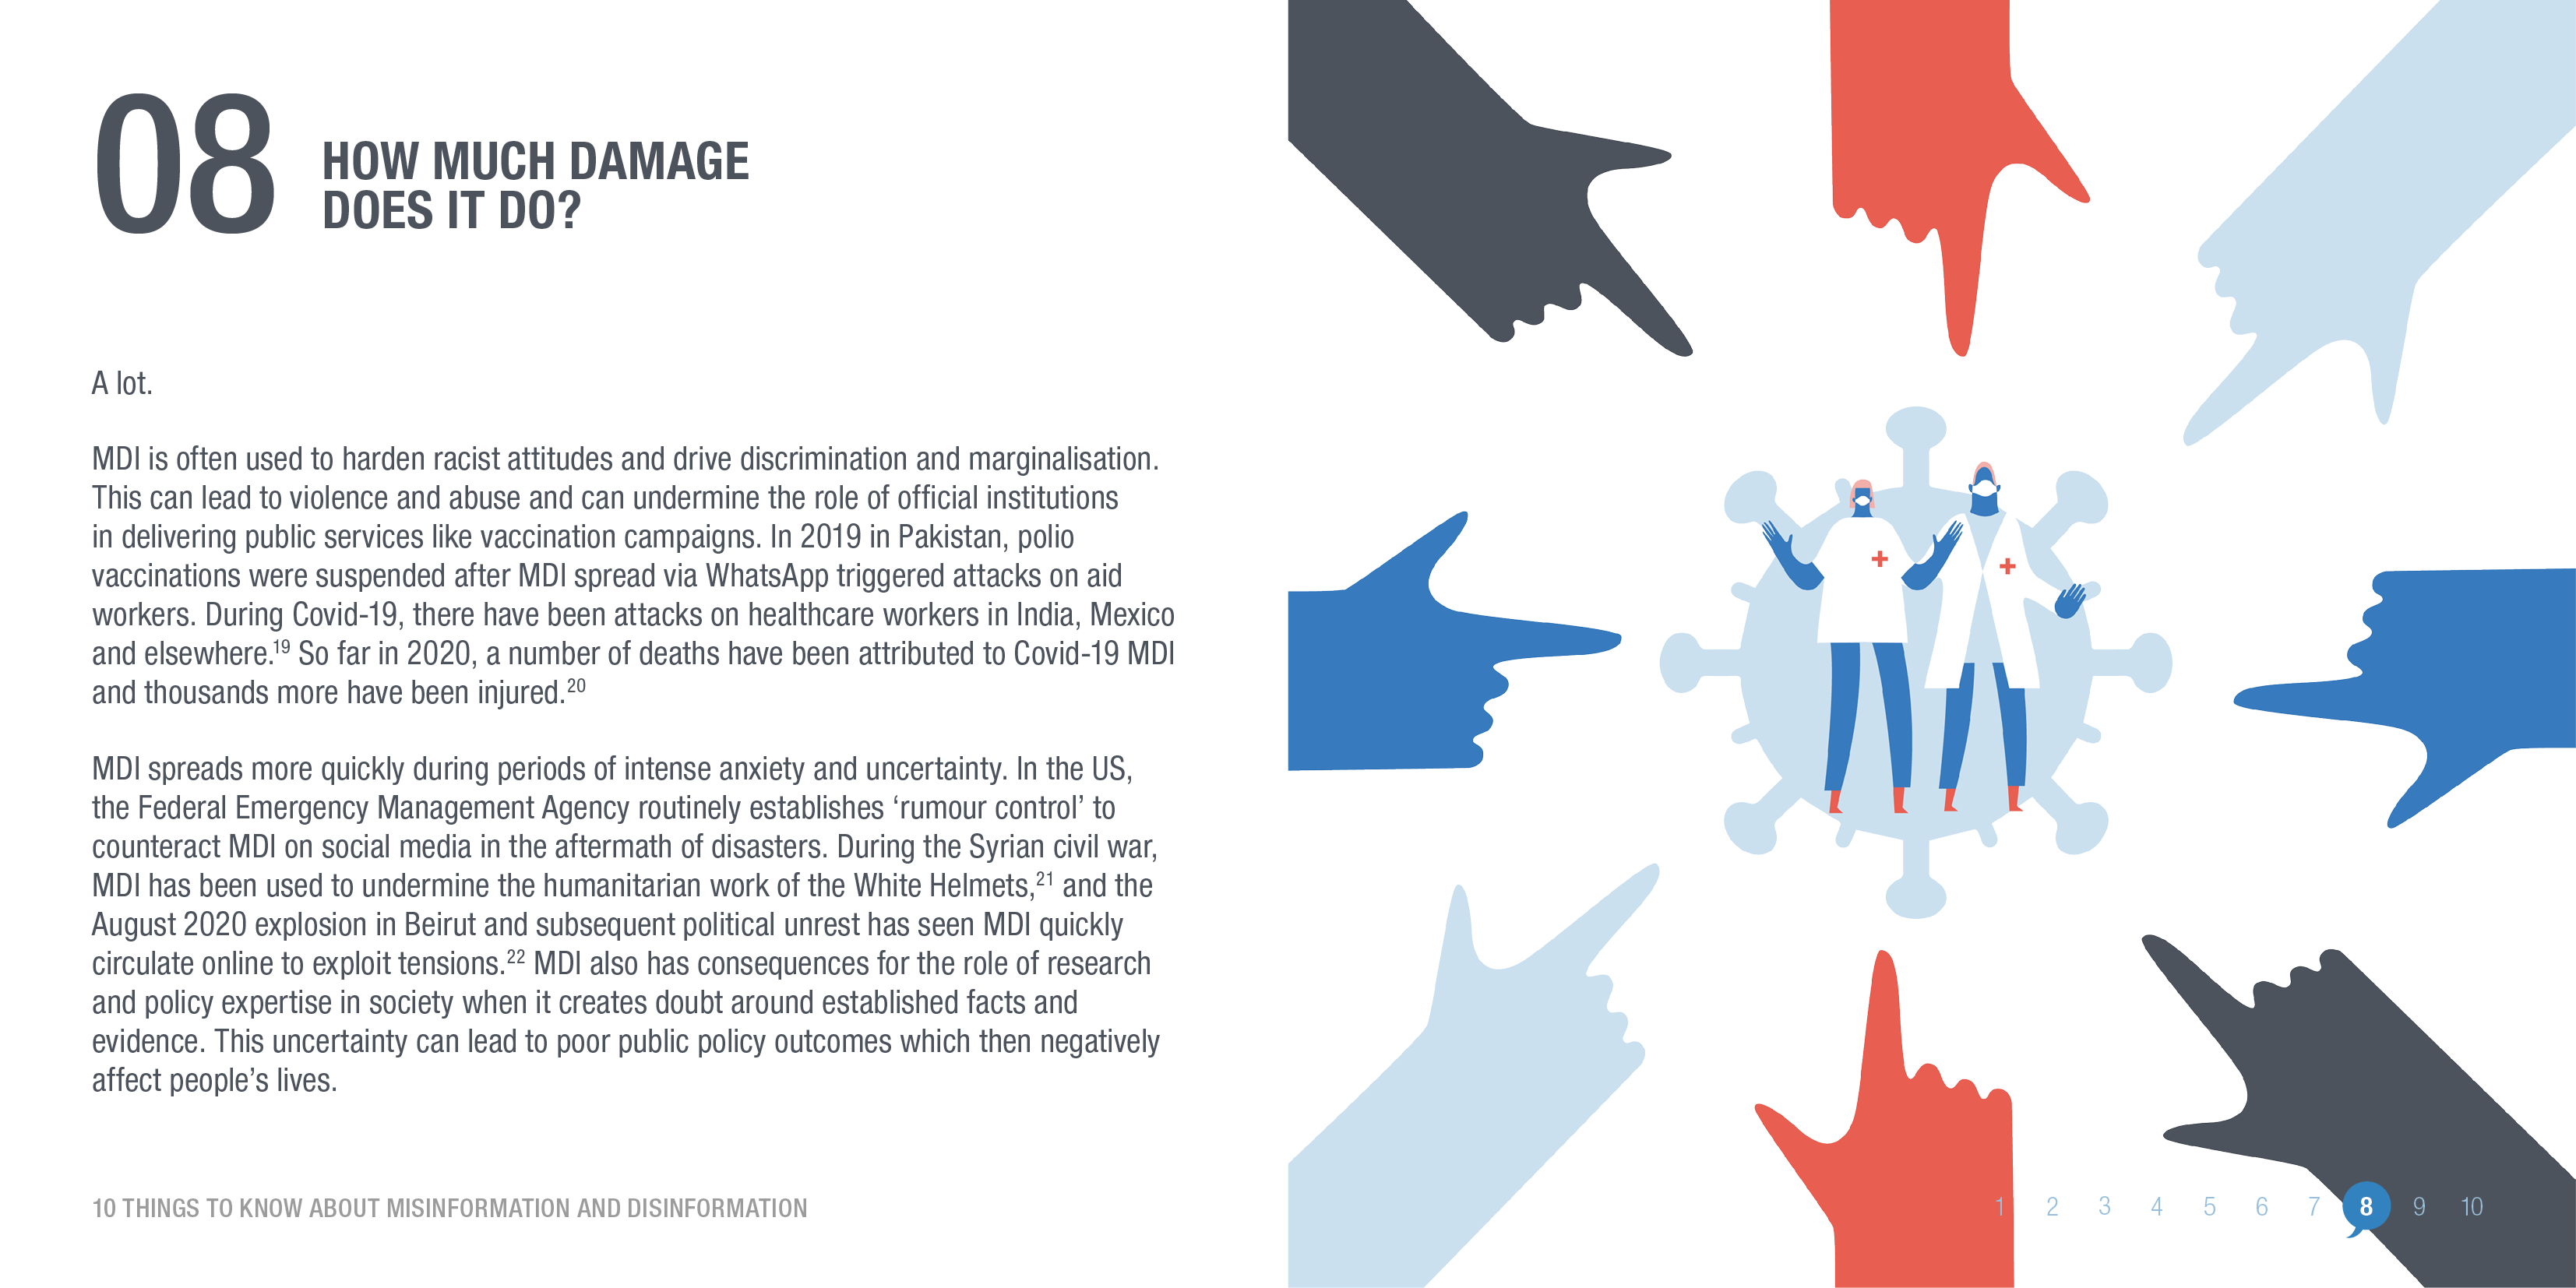 Misinformation and disinformation can cause real damage. © ODI 2020